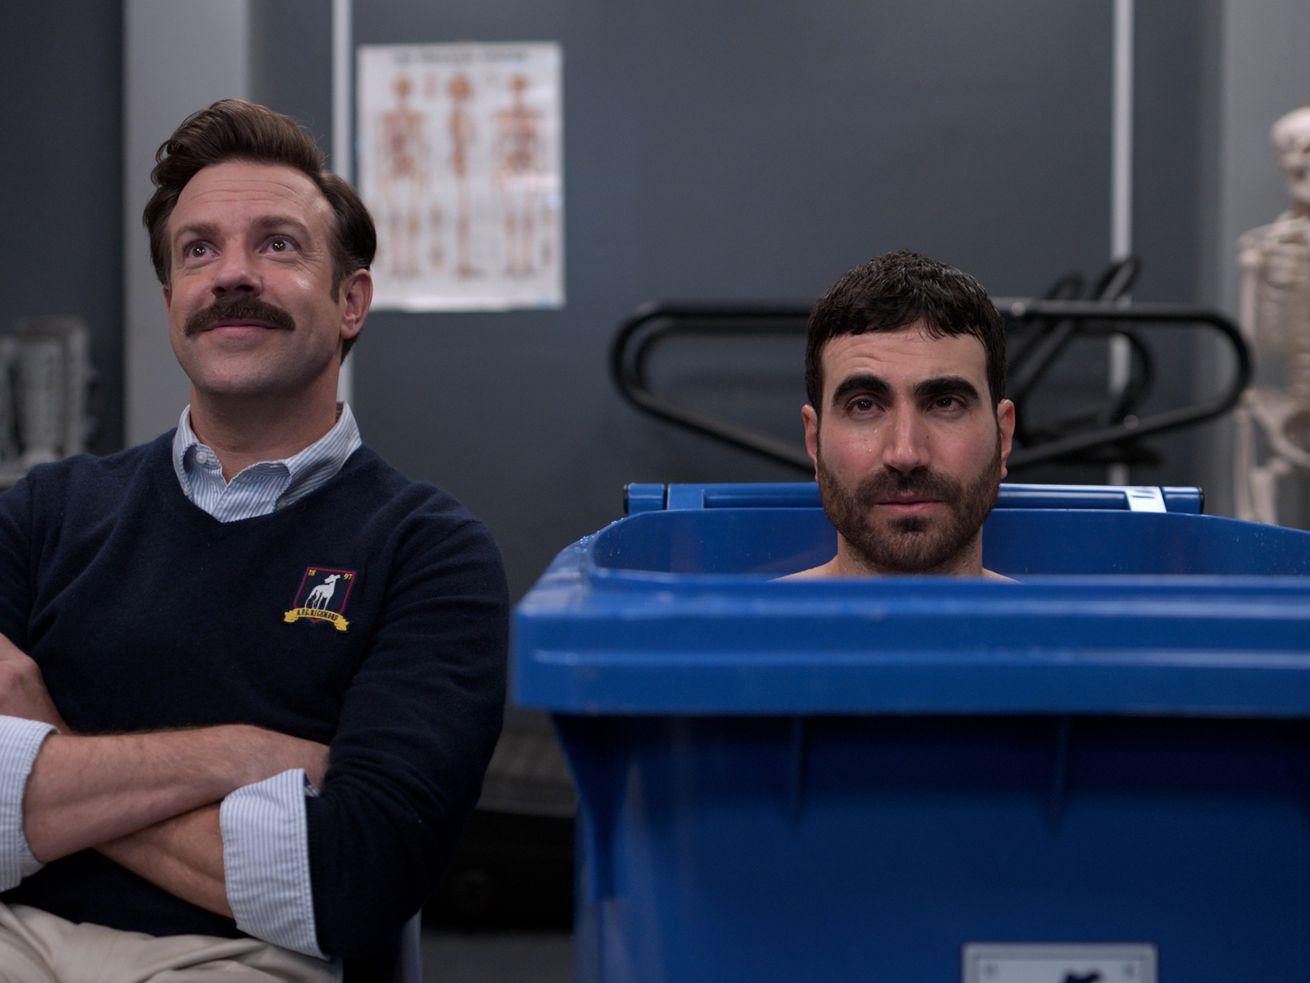 Ted talks to Roy while Roy sits in an ice bath.